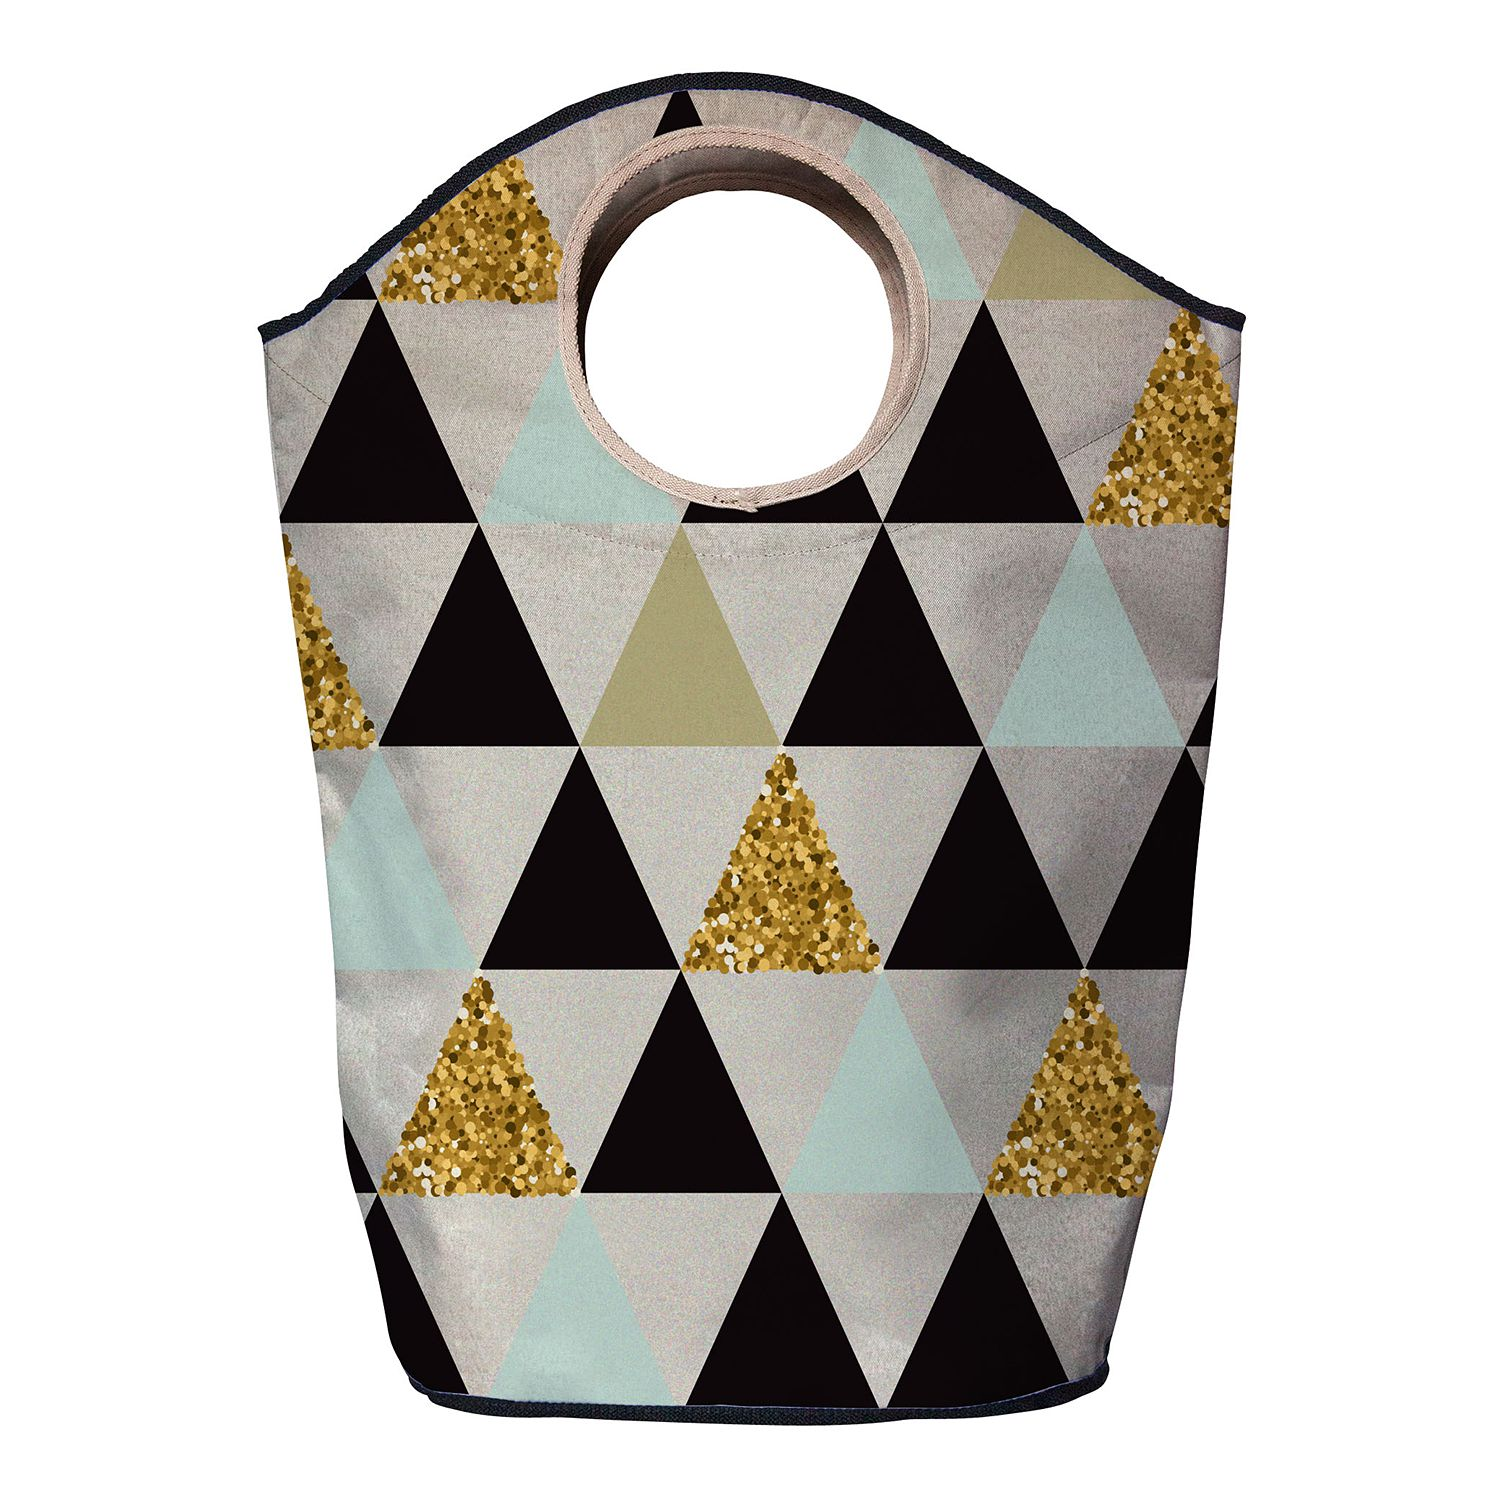 Wasmand gold triangles - geweven stof - lichtbeige/zwart, Butter Kings